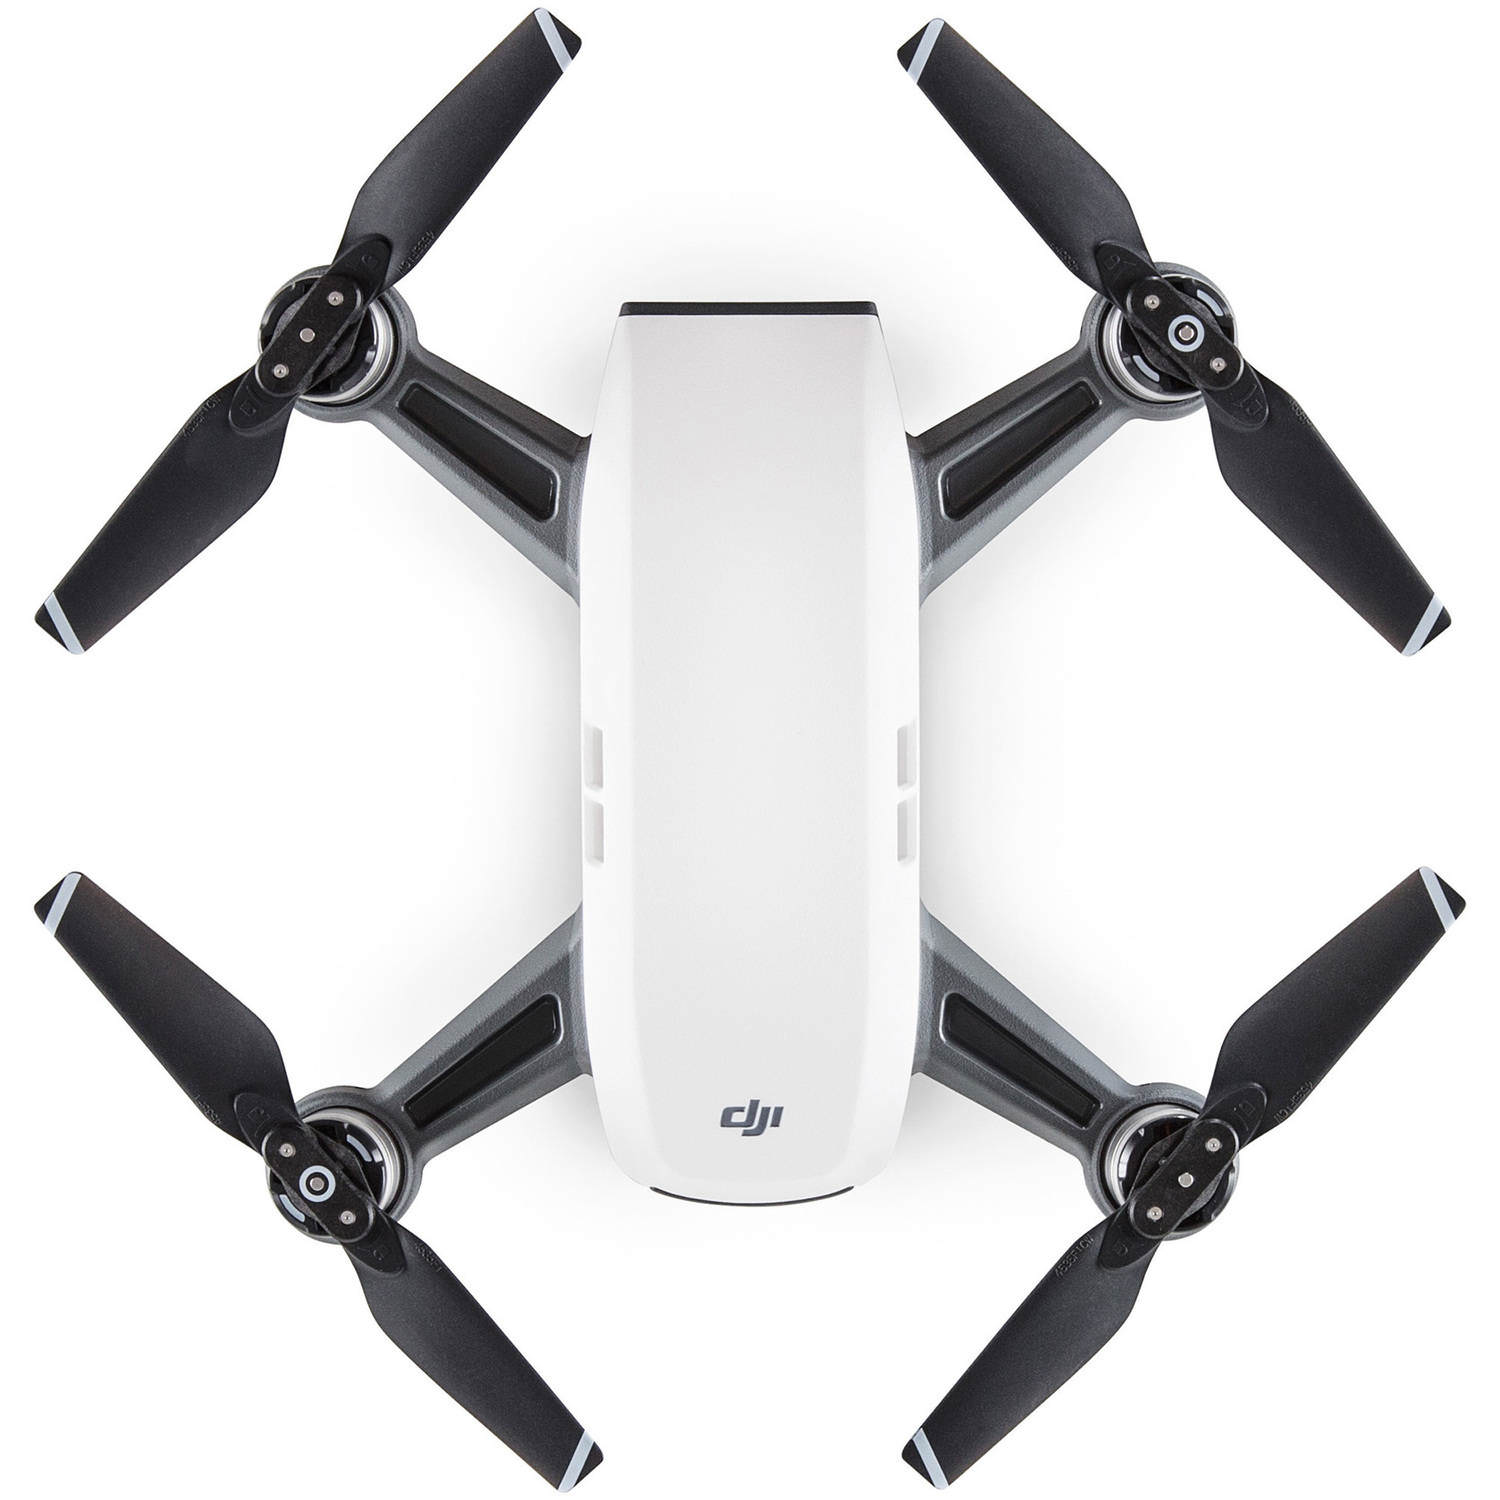 DJI SPARK Intelligent Wi-Fi Quadcopter Drone 12MP Camera 1080p Video Alpine White by DJI